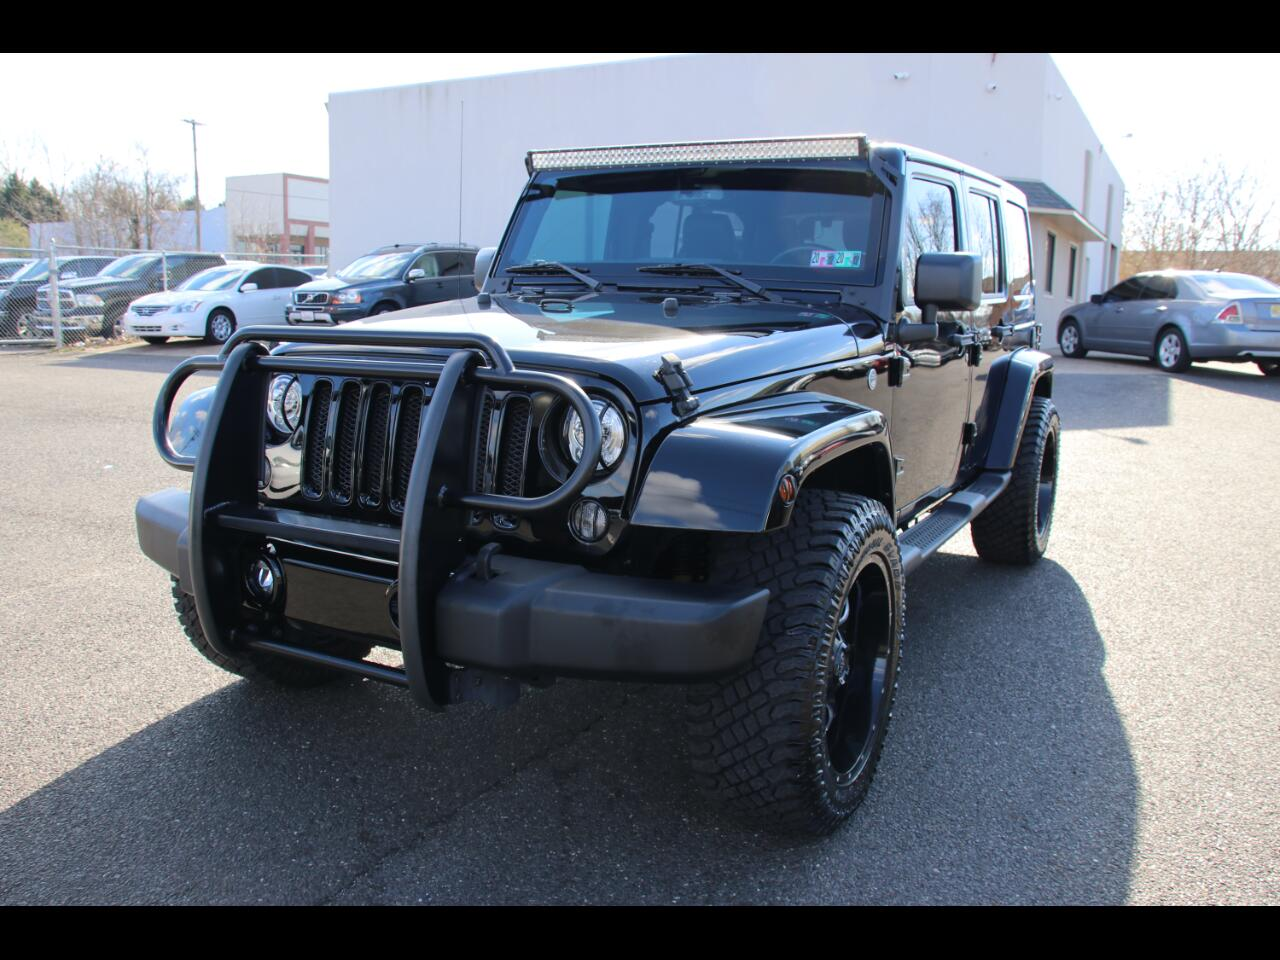 Jeep Wrangler JK Unlimited Sahara 4x4 2018